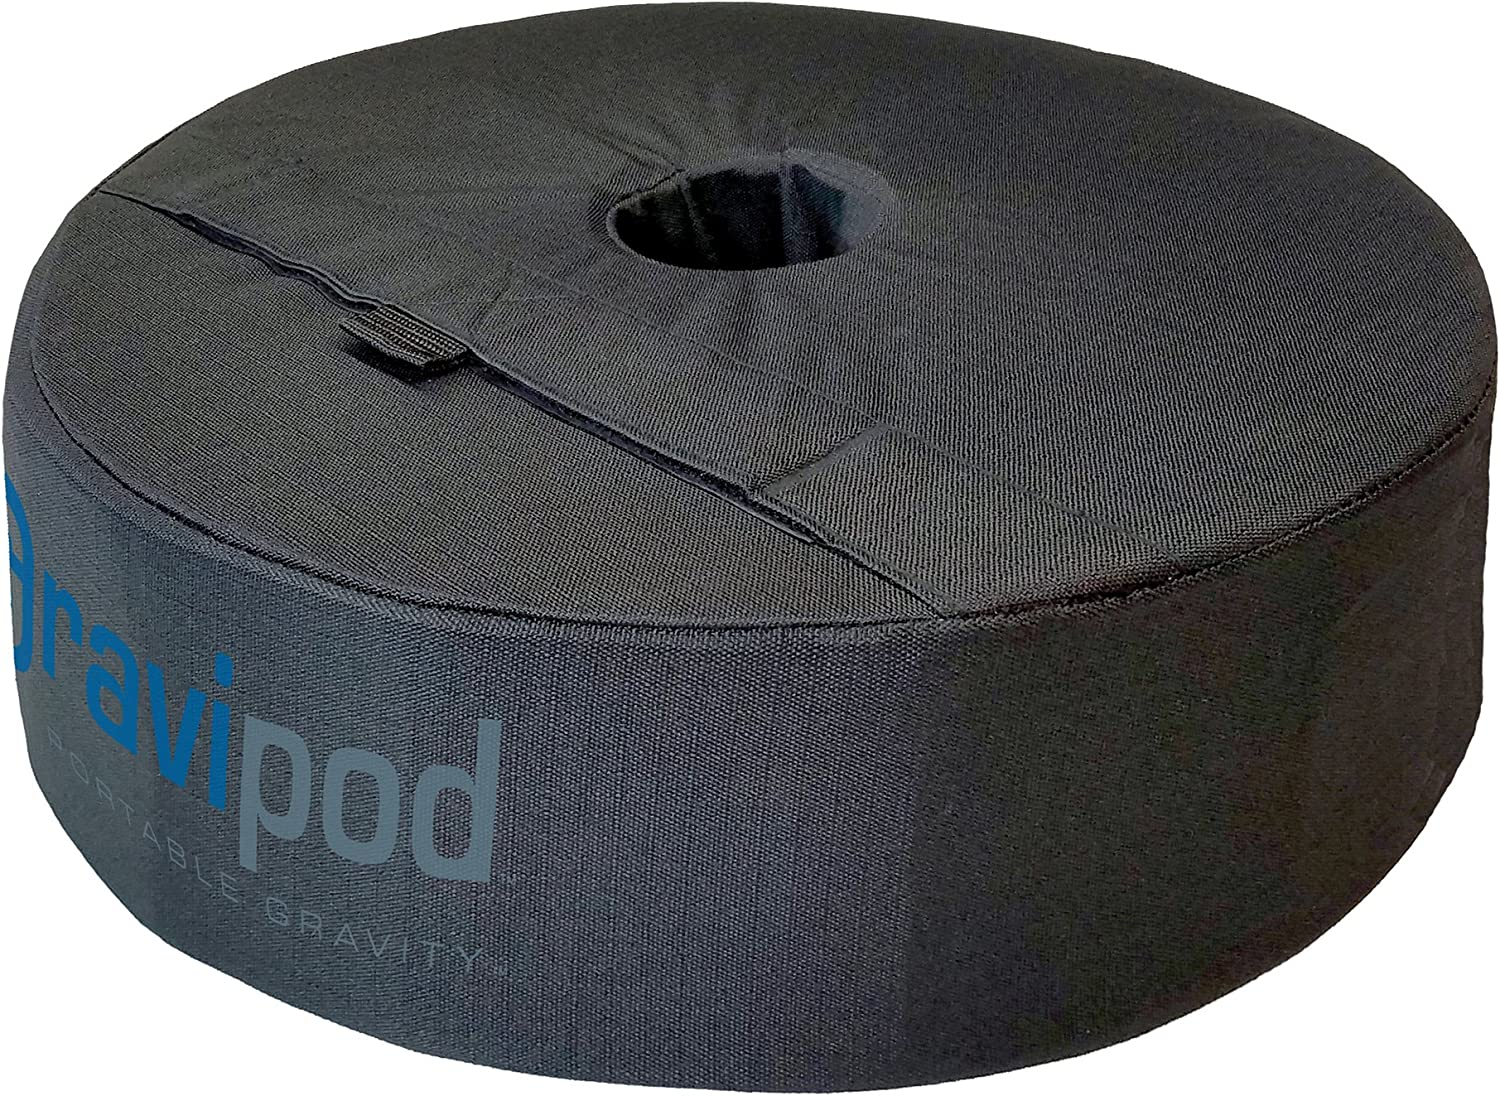 Gravipod 18 Round Umbrella Base Weight Bag – Up To 85 lbs.